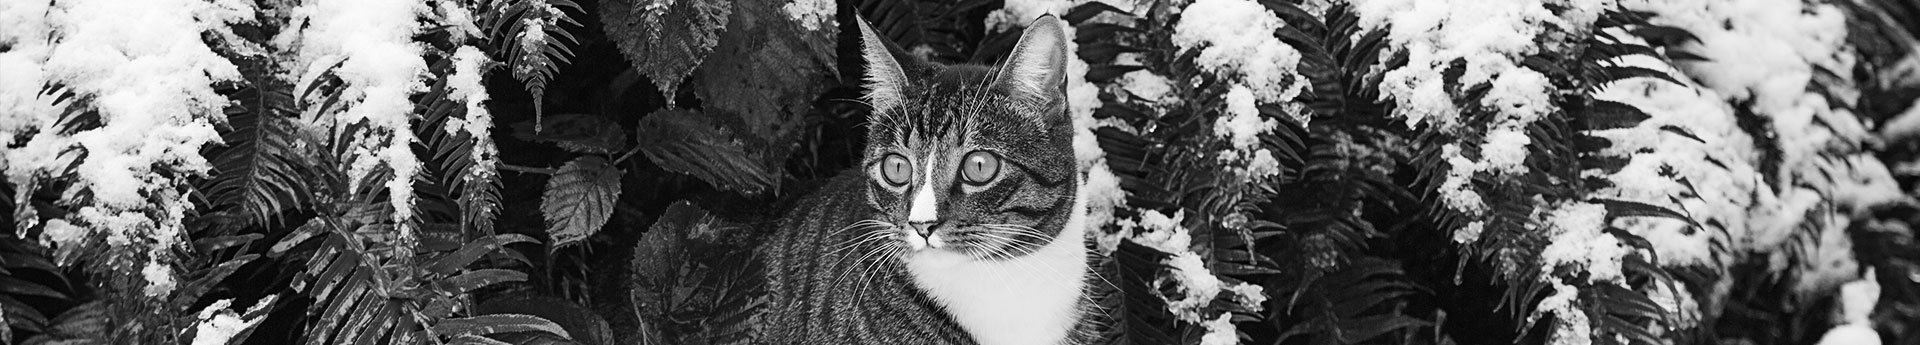 ORIJEN Fit & Trim Dry Cat Food - Wide-eyed cat in snow covered plants - Tyke from Washington